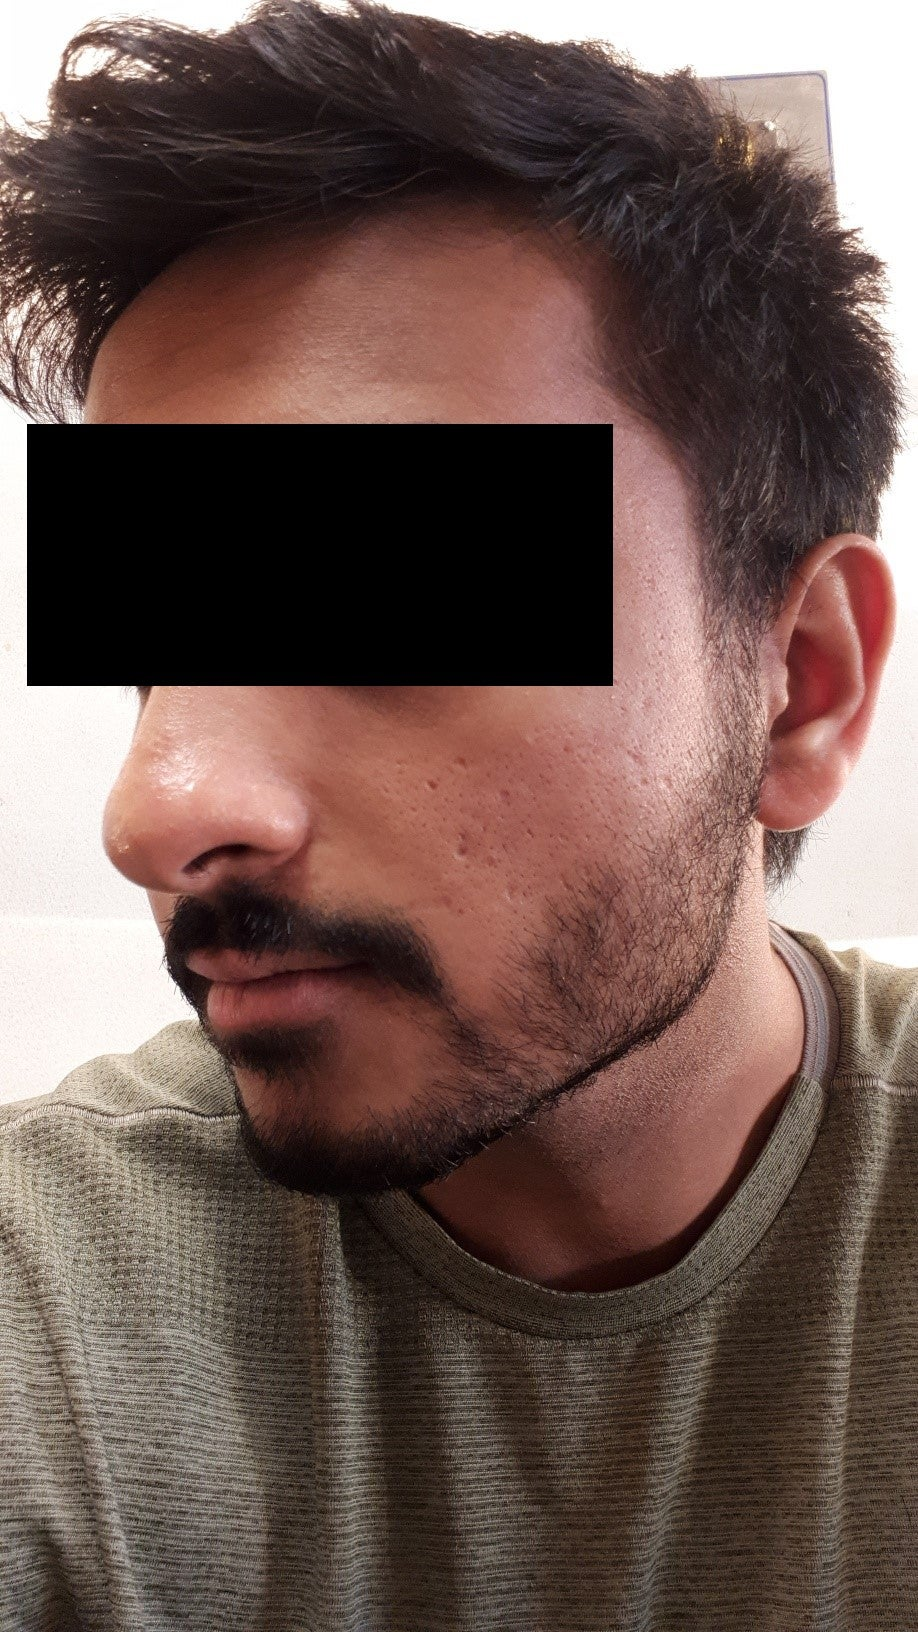 [Skin Concerns] Any tips with dealing with these acne scars?